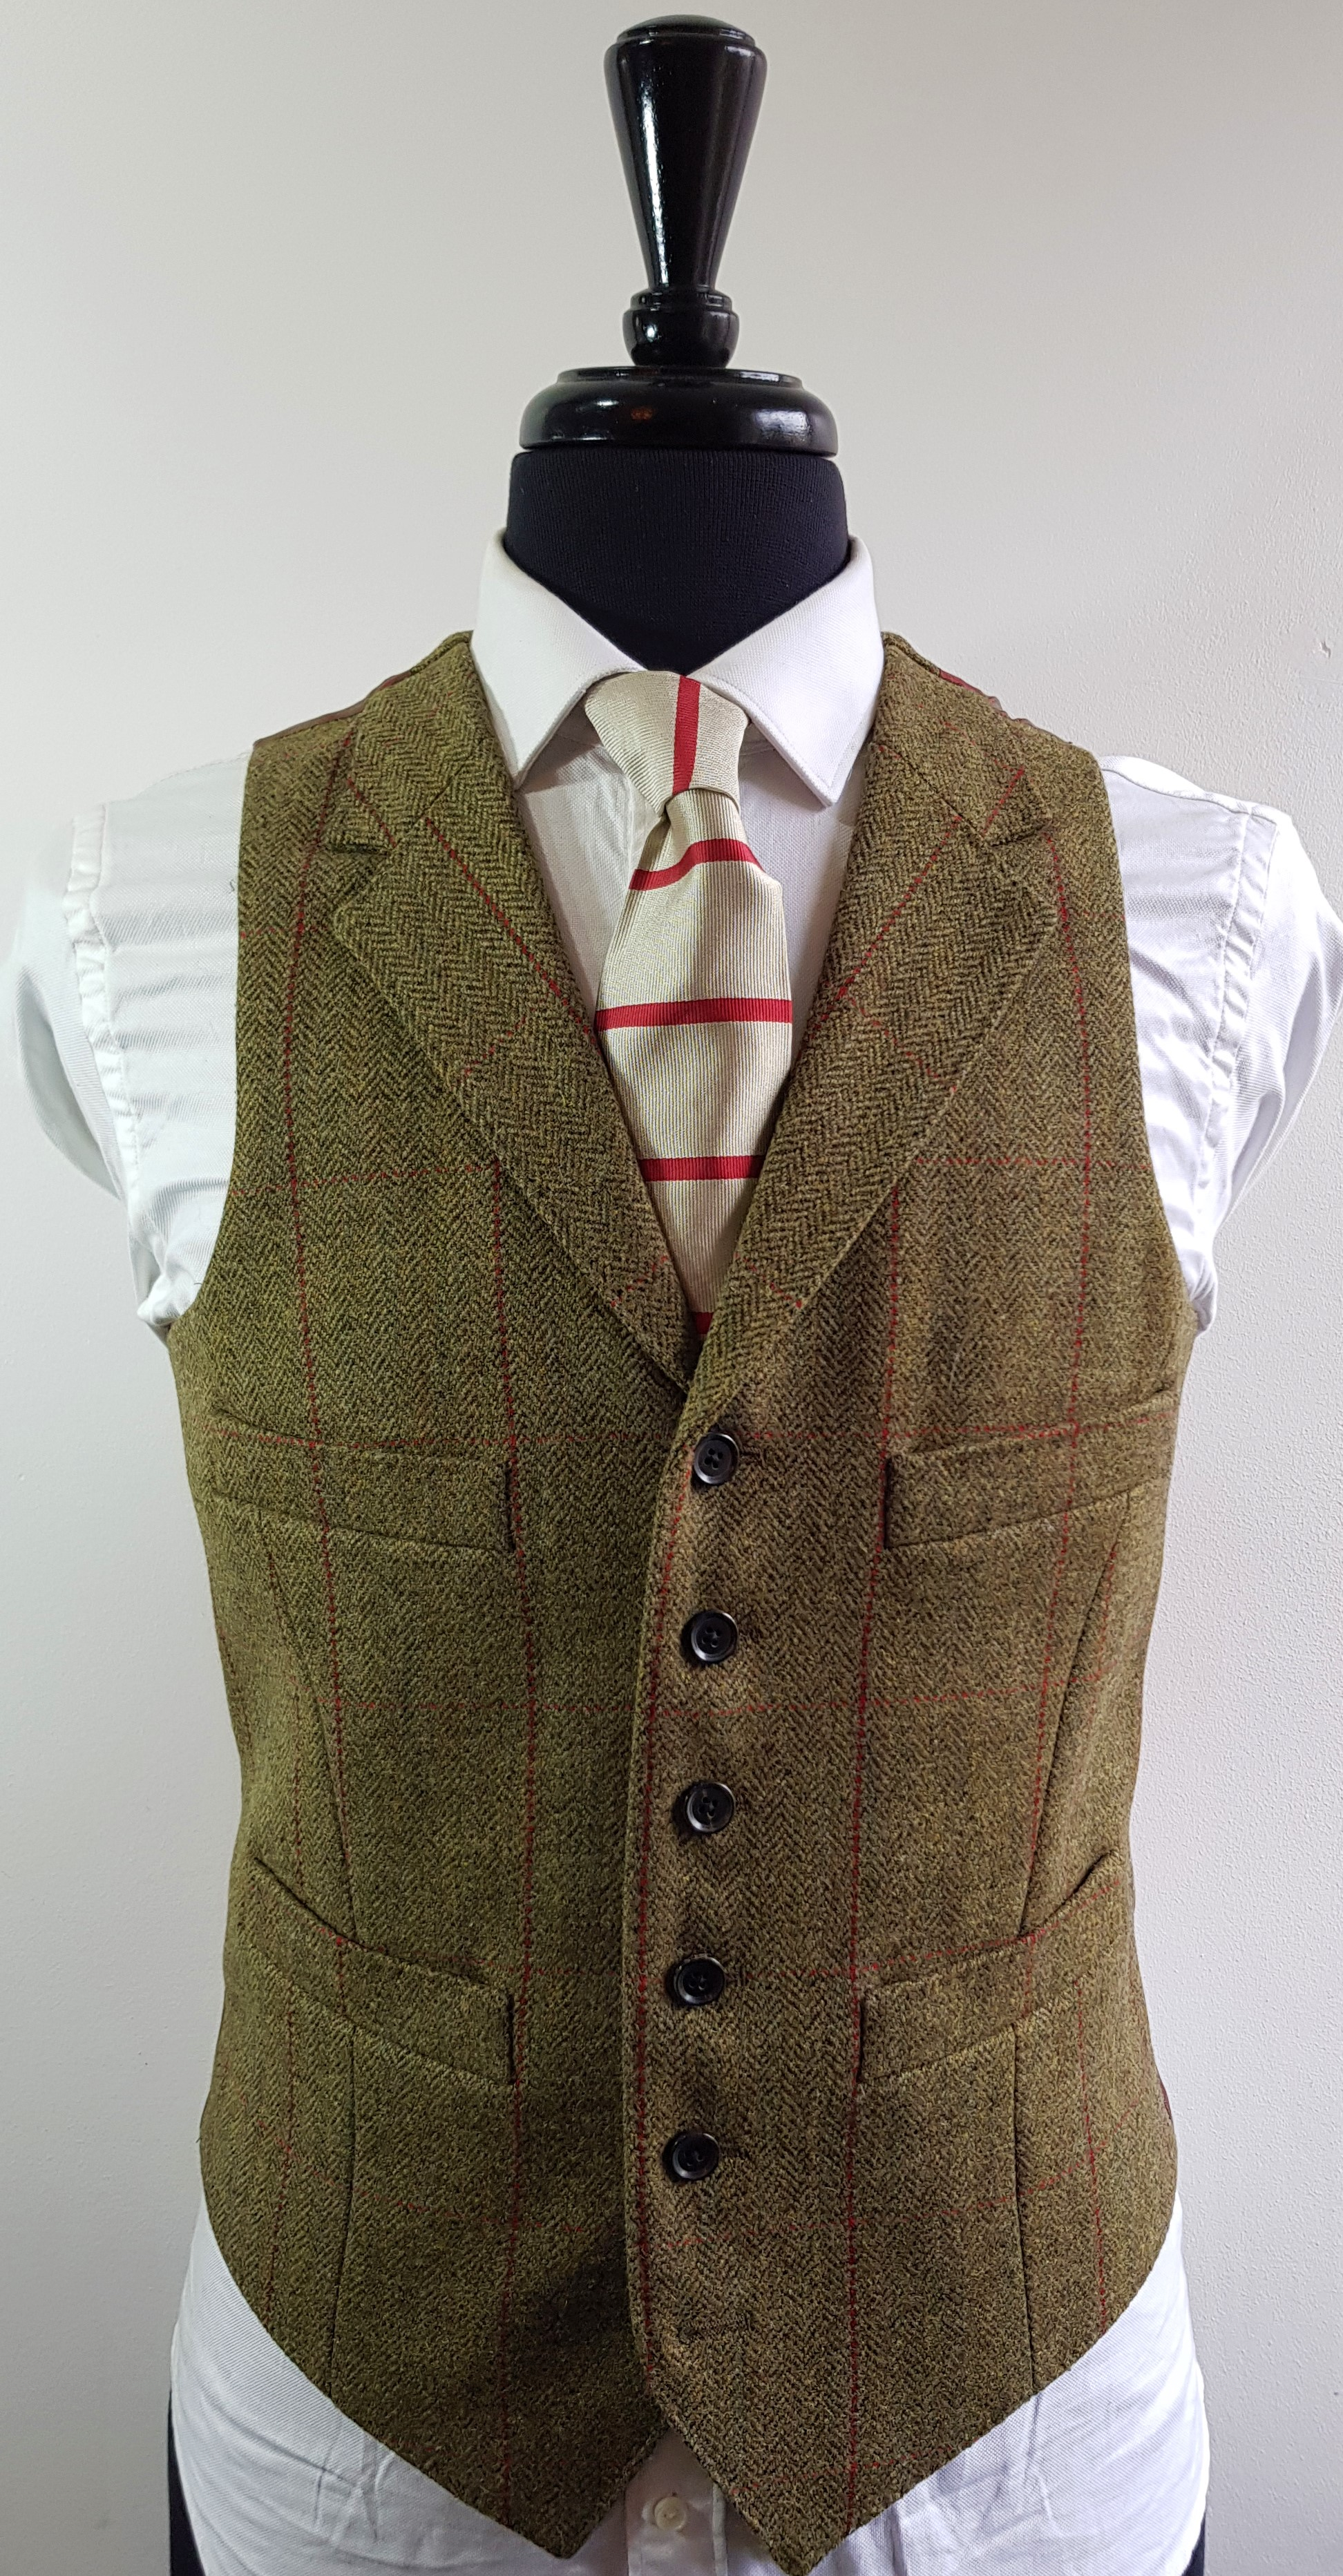 Tweed Jacket and Tweed Waistcoat (2).jpg